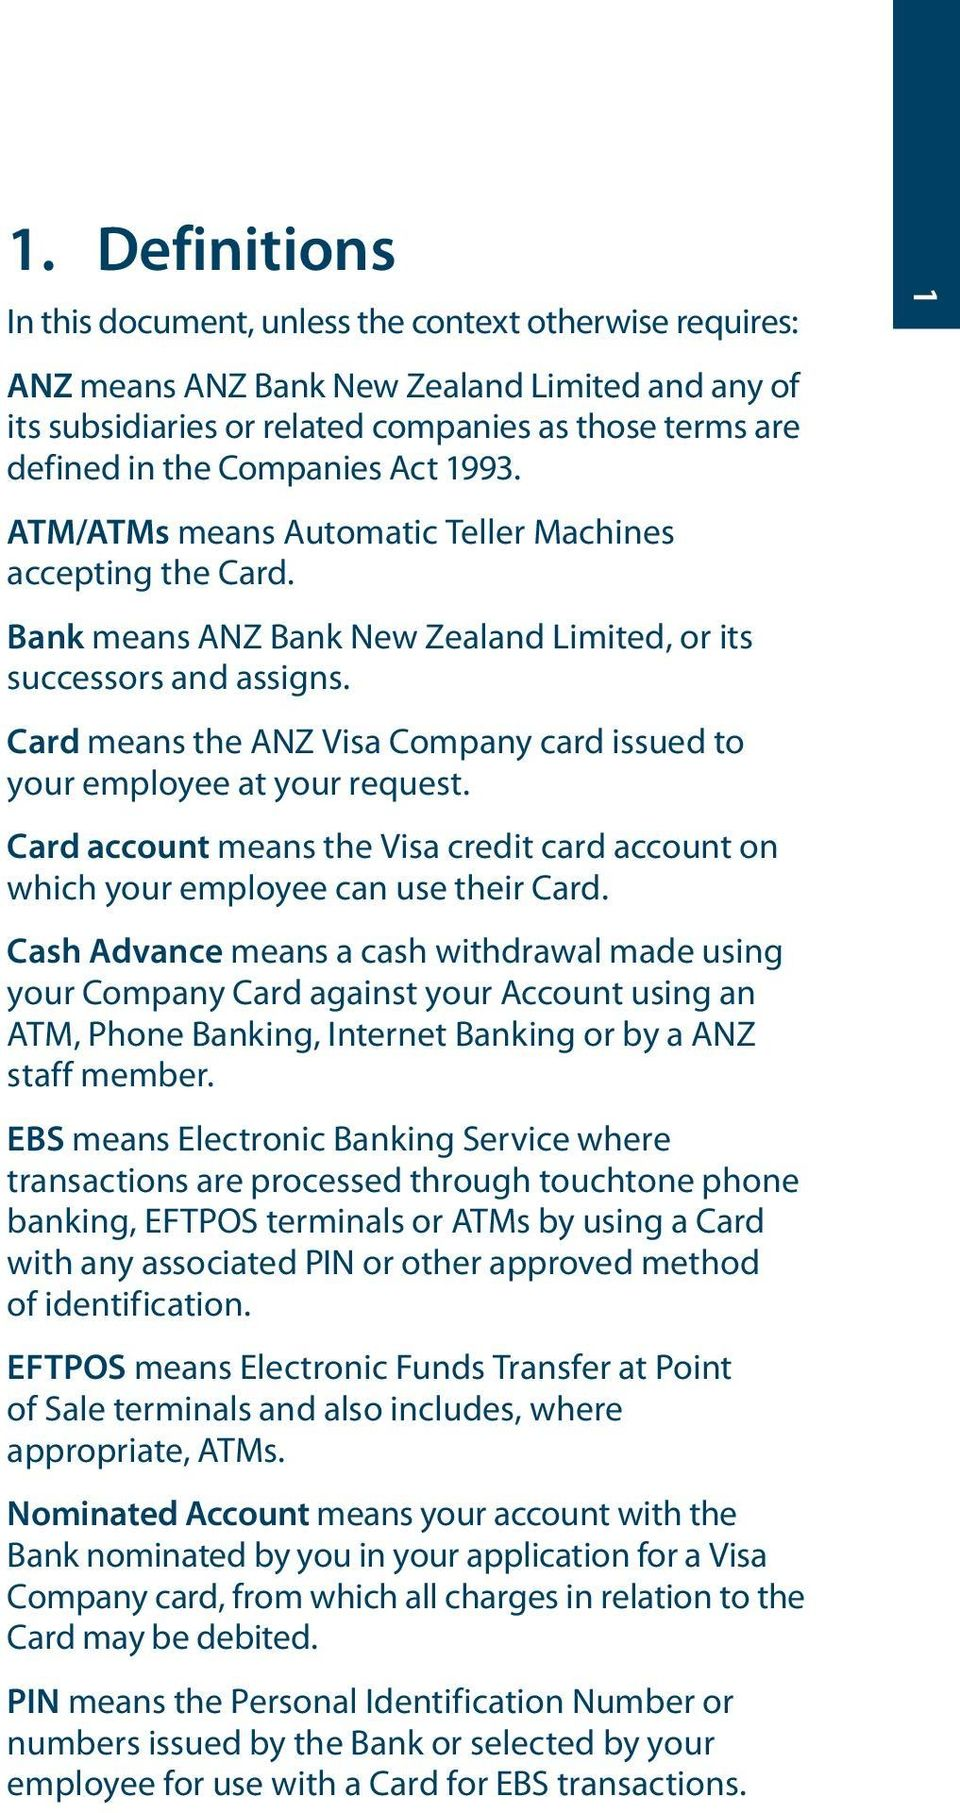 Card means the ANZ Visa Company card issued to your employee at your request. Card account means the Visa credit card account on which your employee can use their Card.